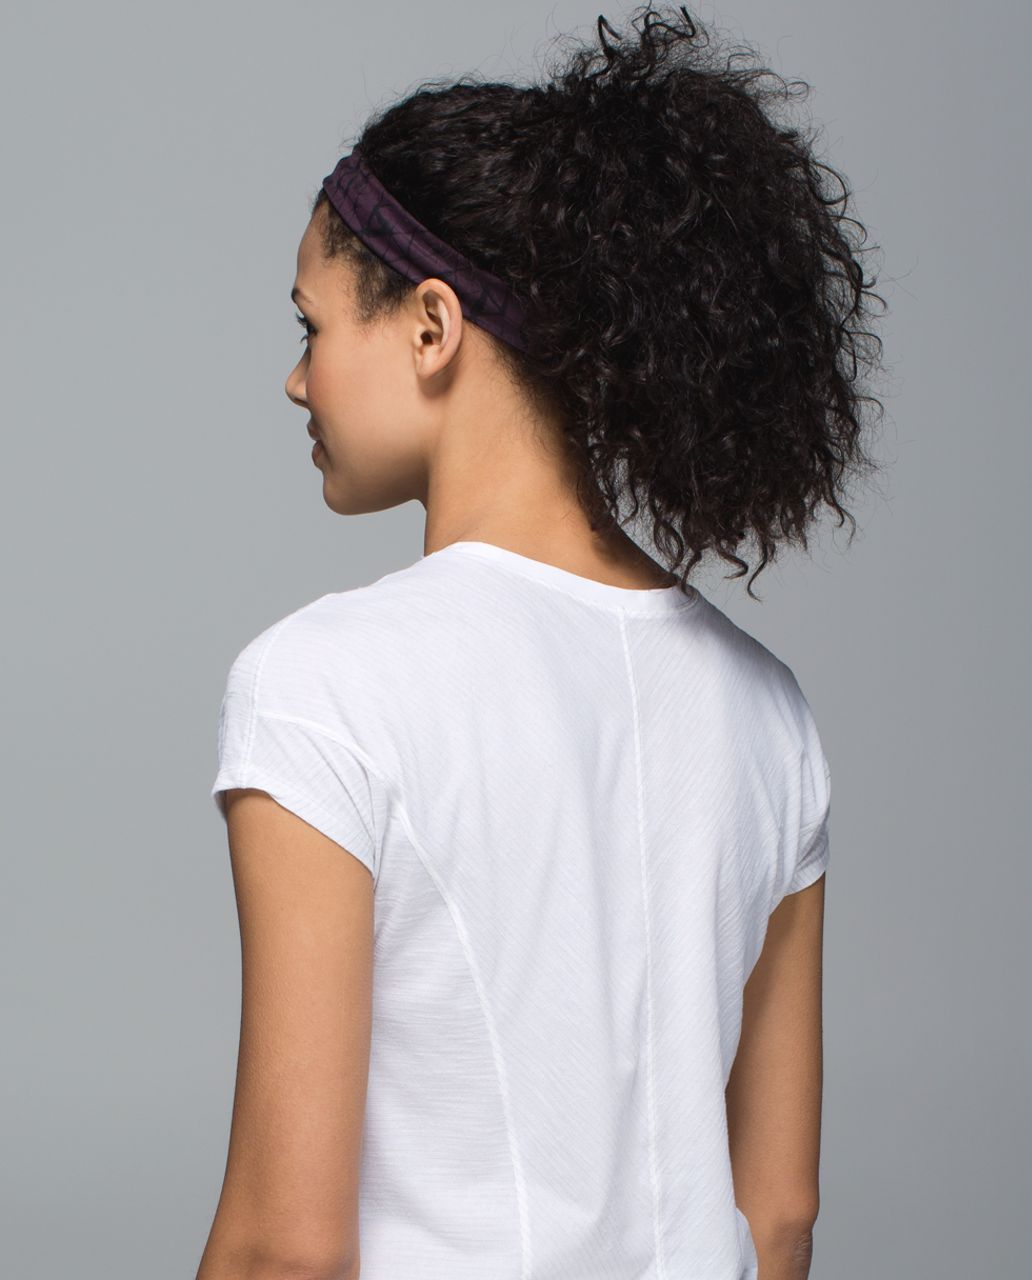 Lululemon Skinny Fly Away Tamer Headband - Star Crushed Black Cherry Black